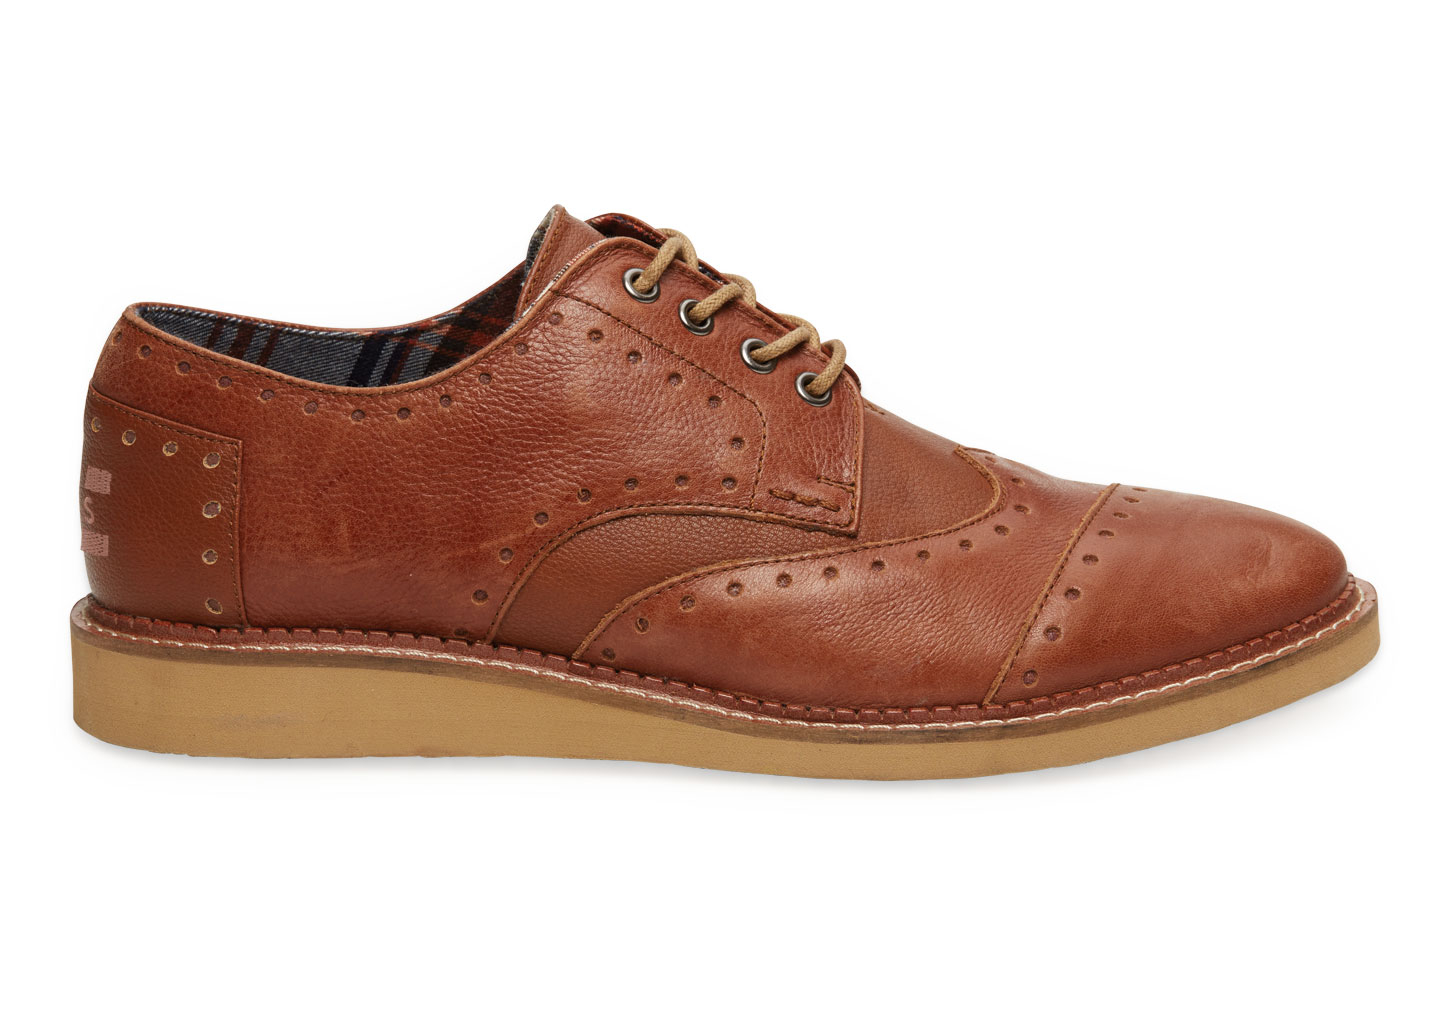 toms brown leather mens brogues in brown for men brown